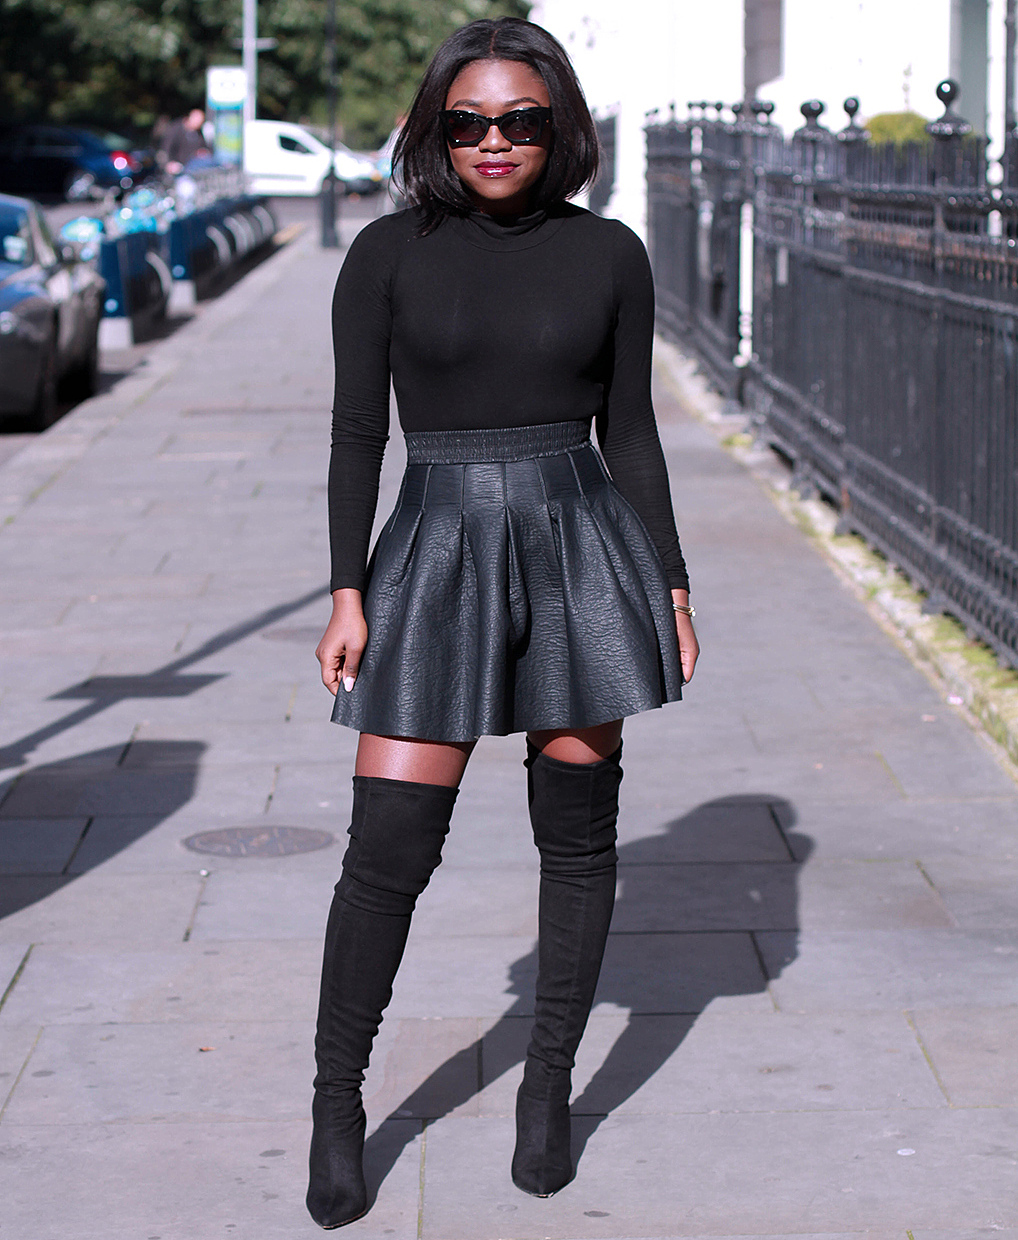 Leather Skirt With Boots Fashion Skirts